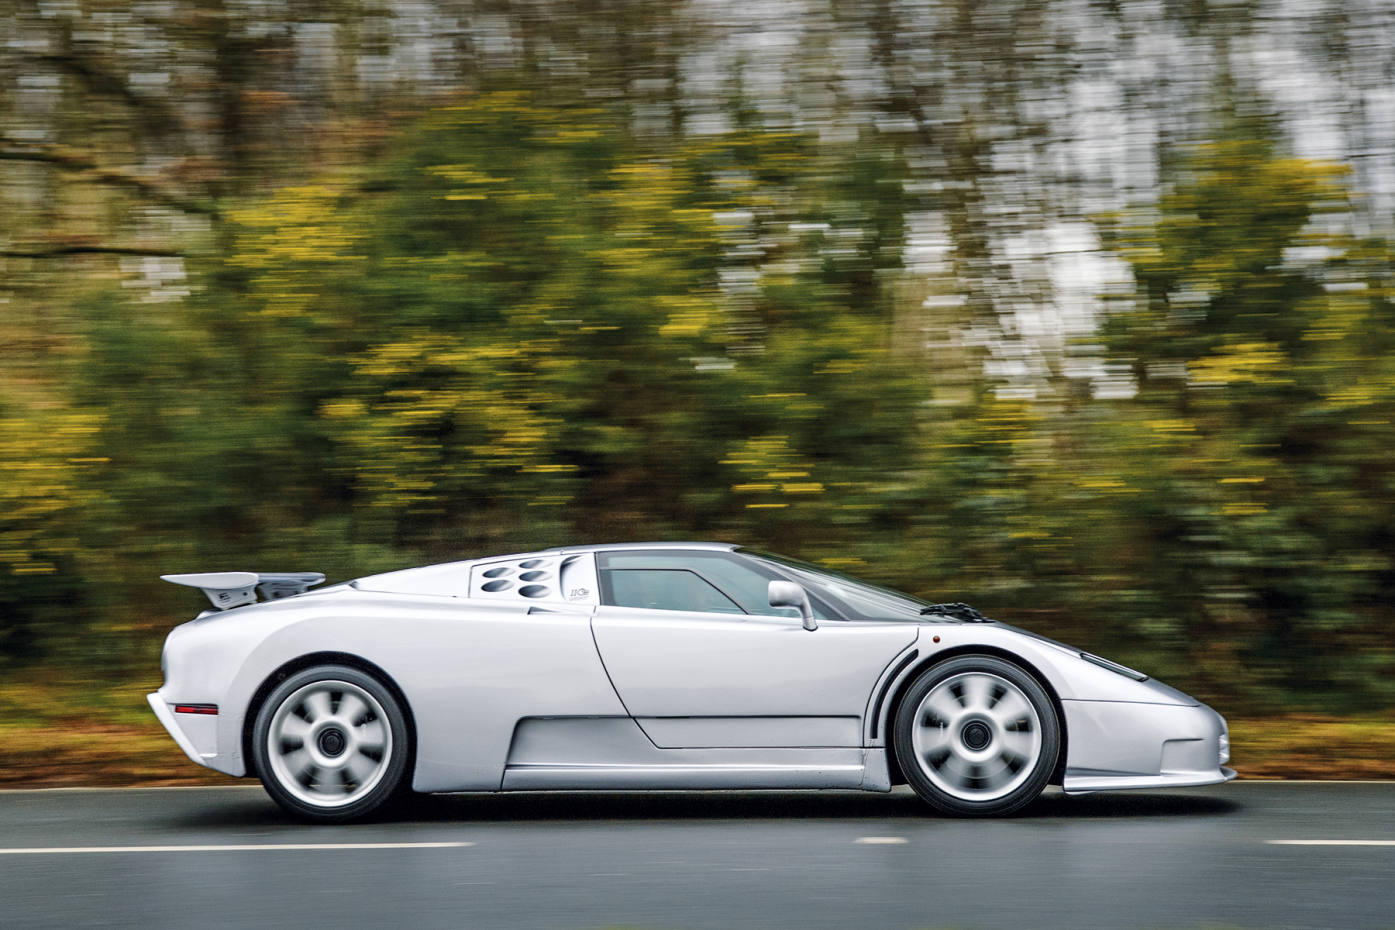 A 1993 Super Sport prototype, sold for €1,152,500 at RM Sotheby's